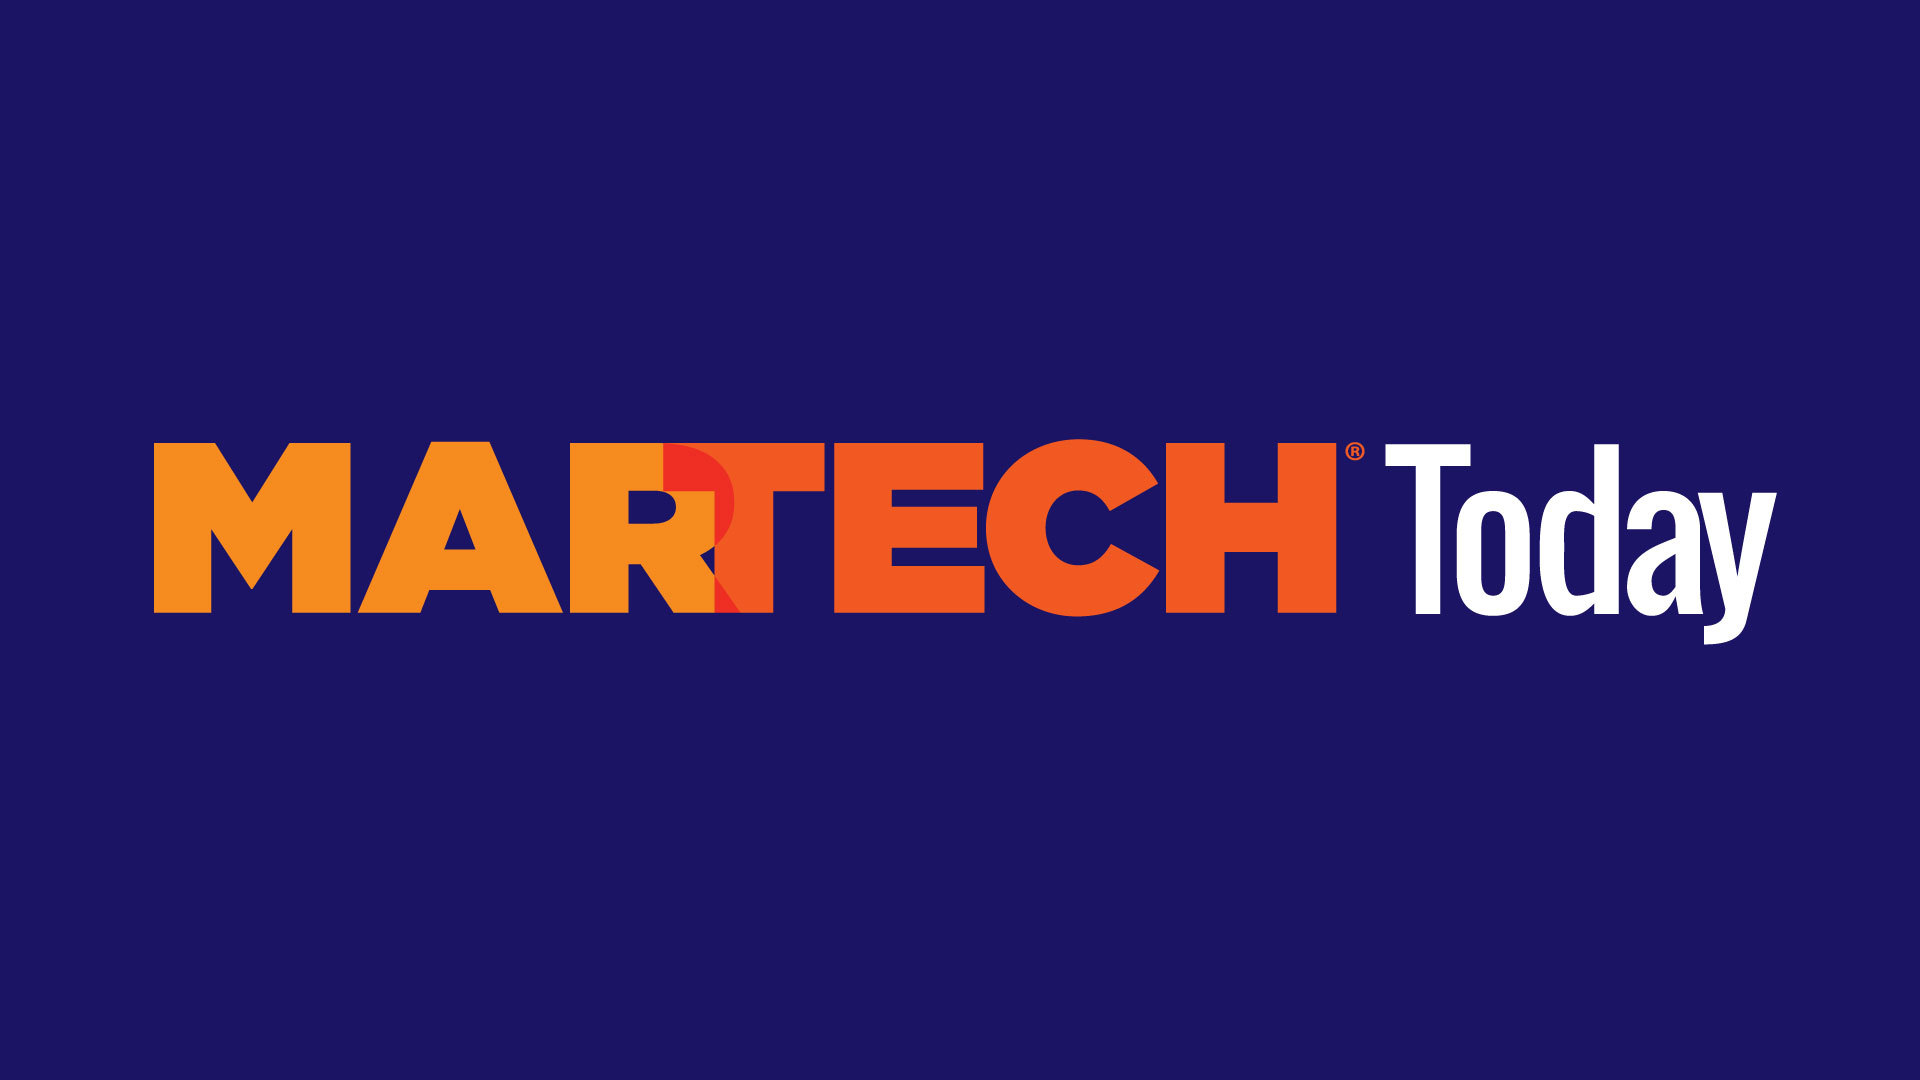 martech today logo